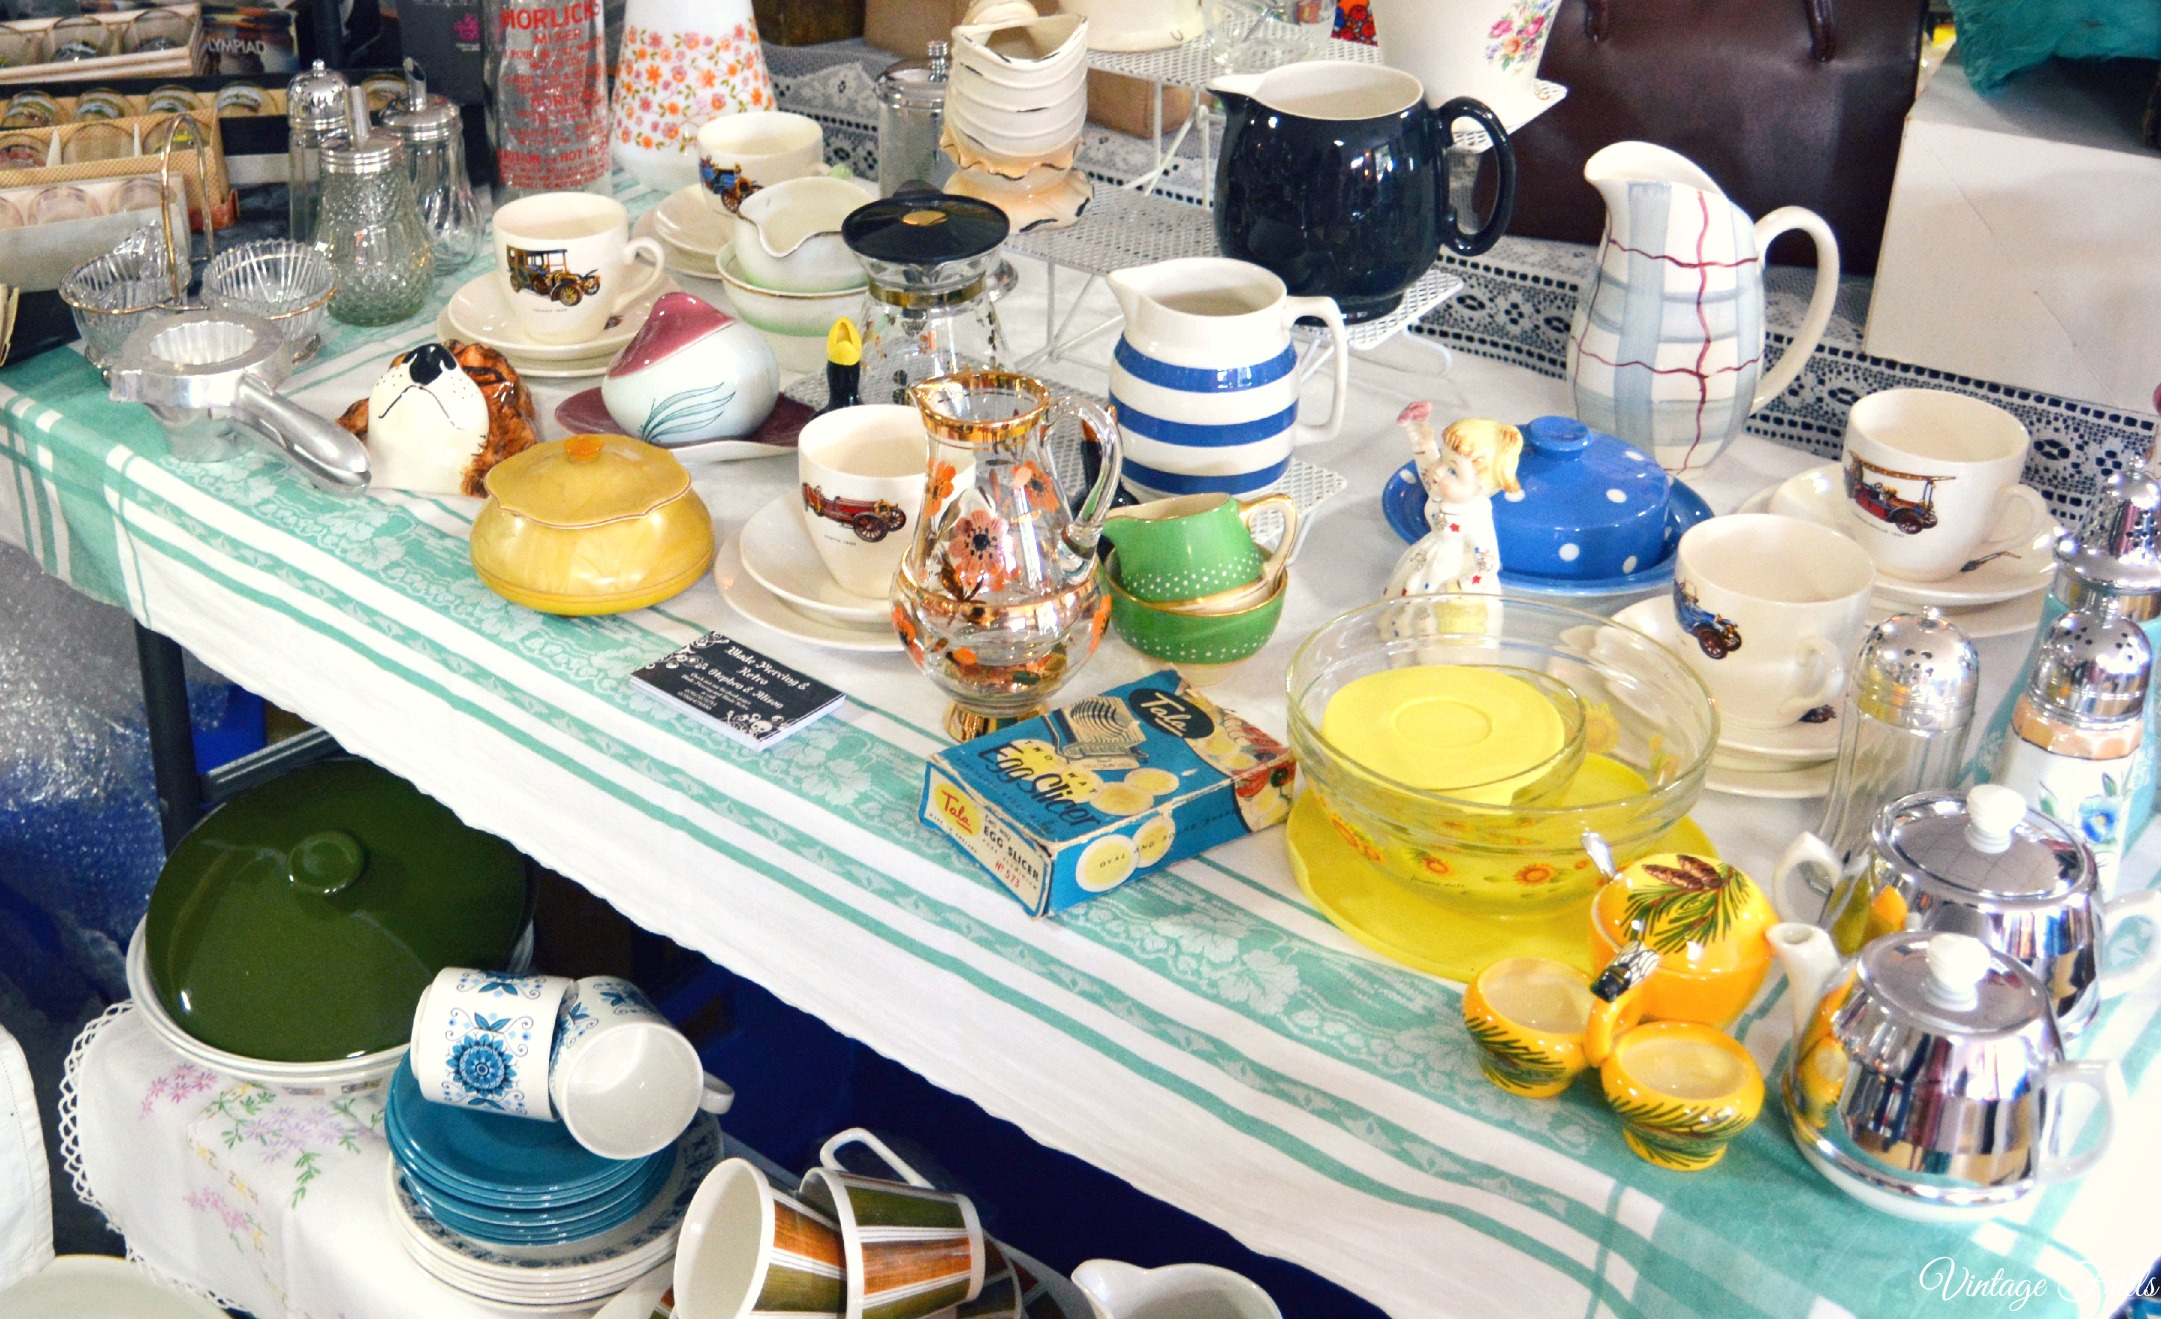 Kingsmadow Vintage Allayer Homeware Stall